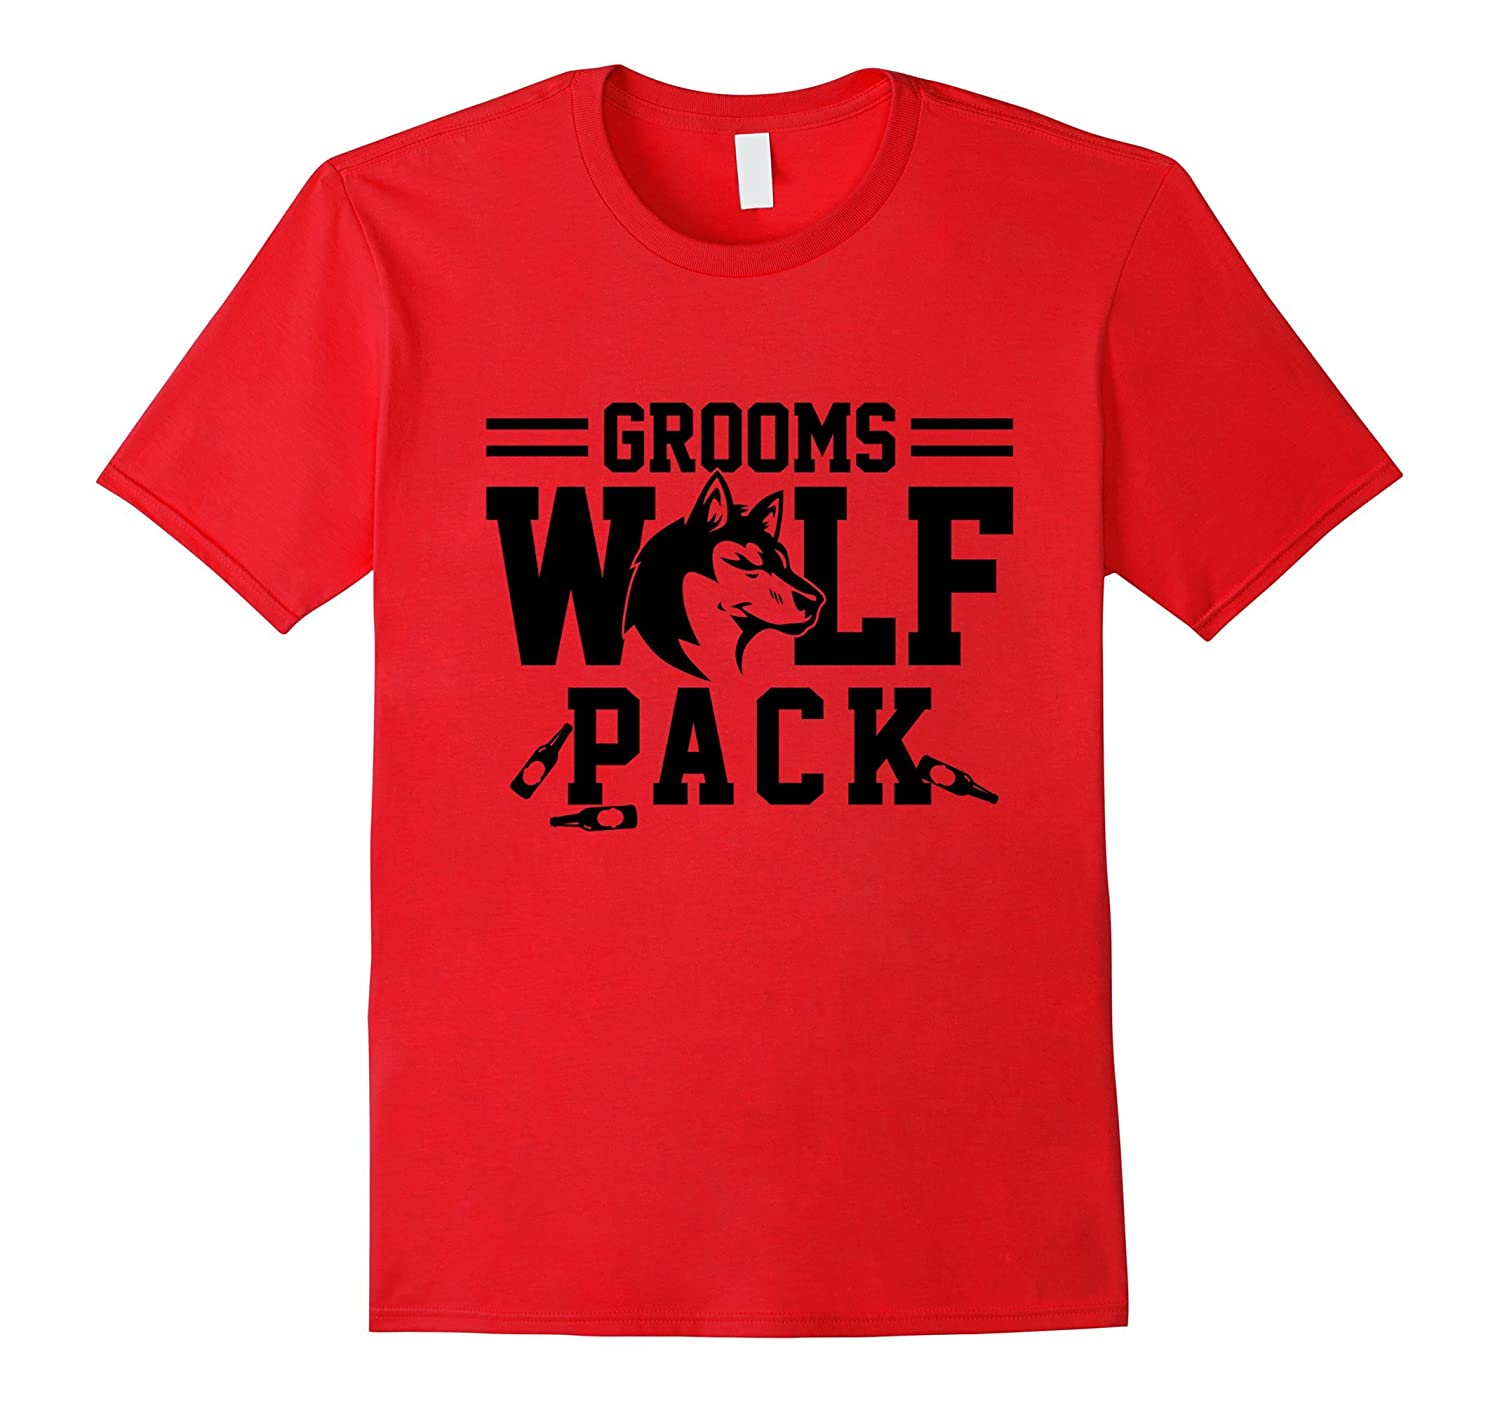 Grooms wolfpack t shirt – Bachelor party drinking team gift